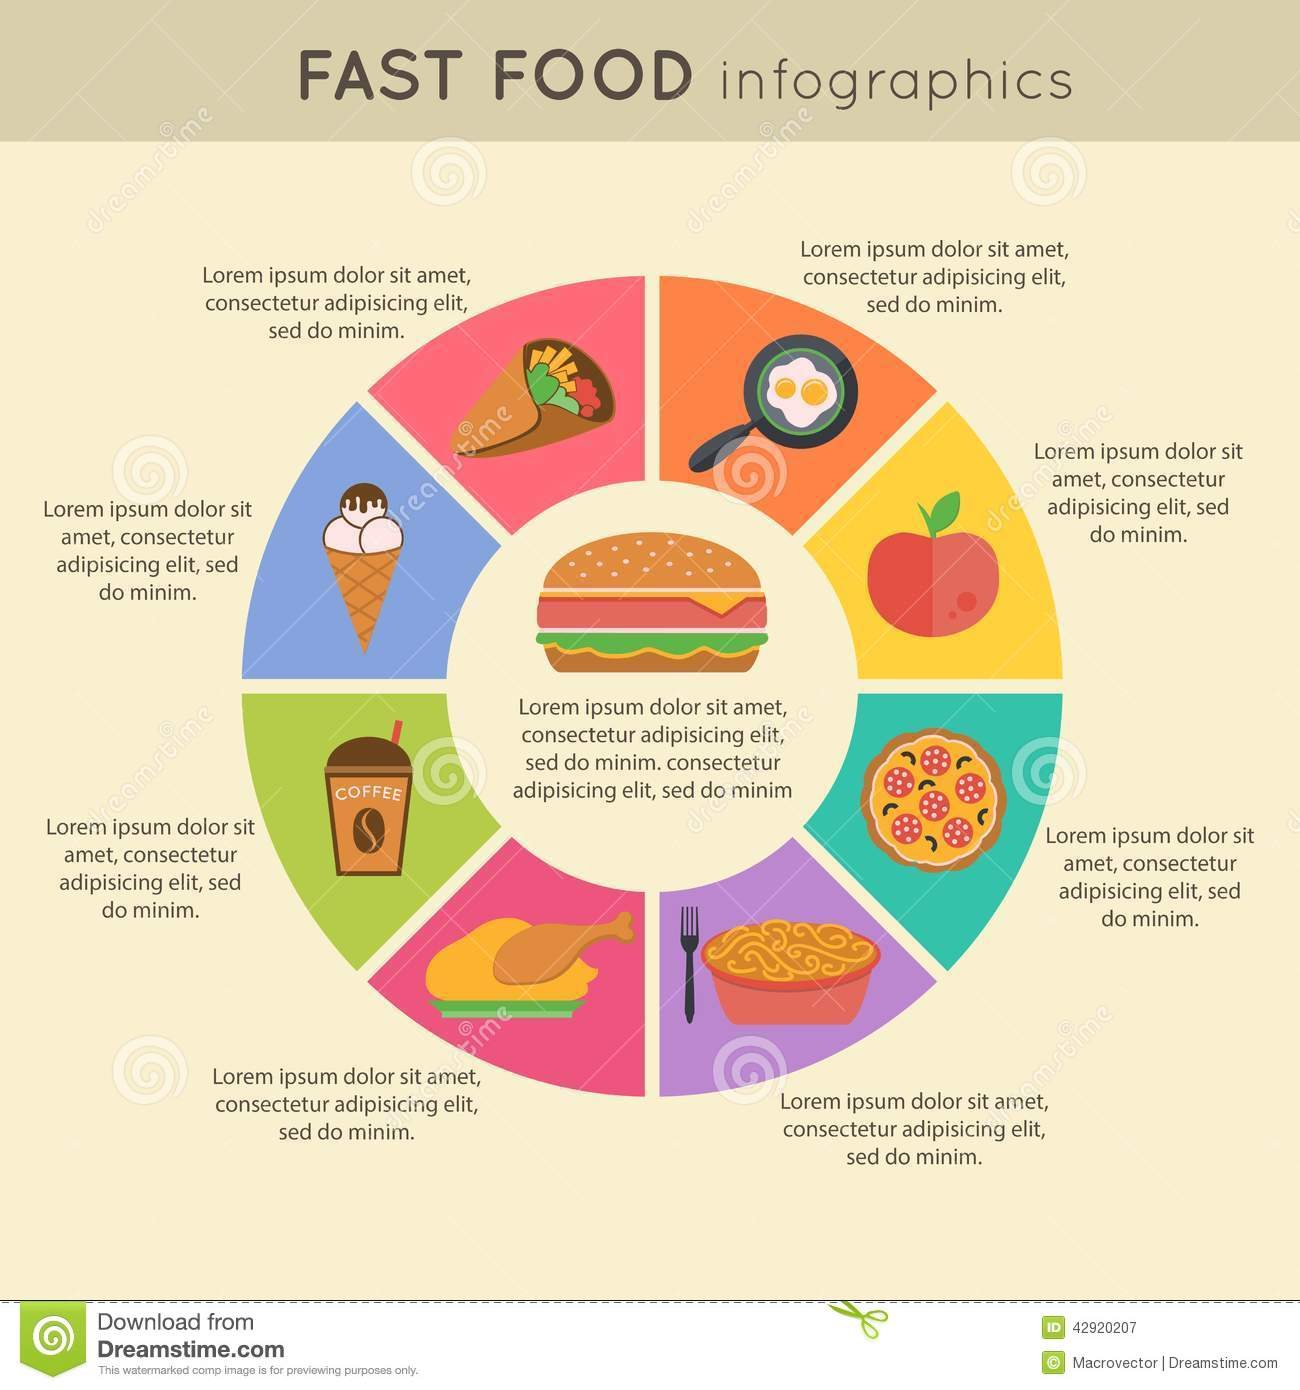 Fast Food Chart Of Calories